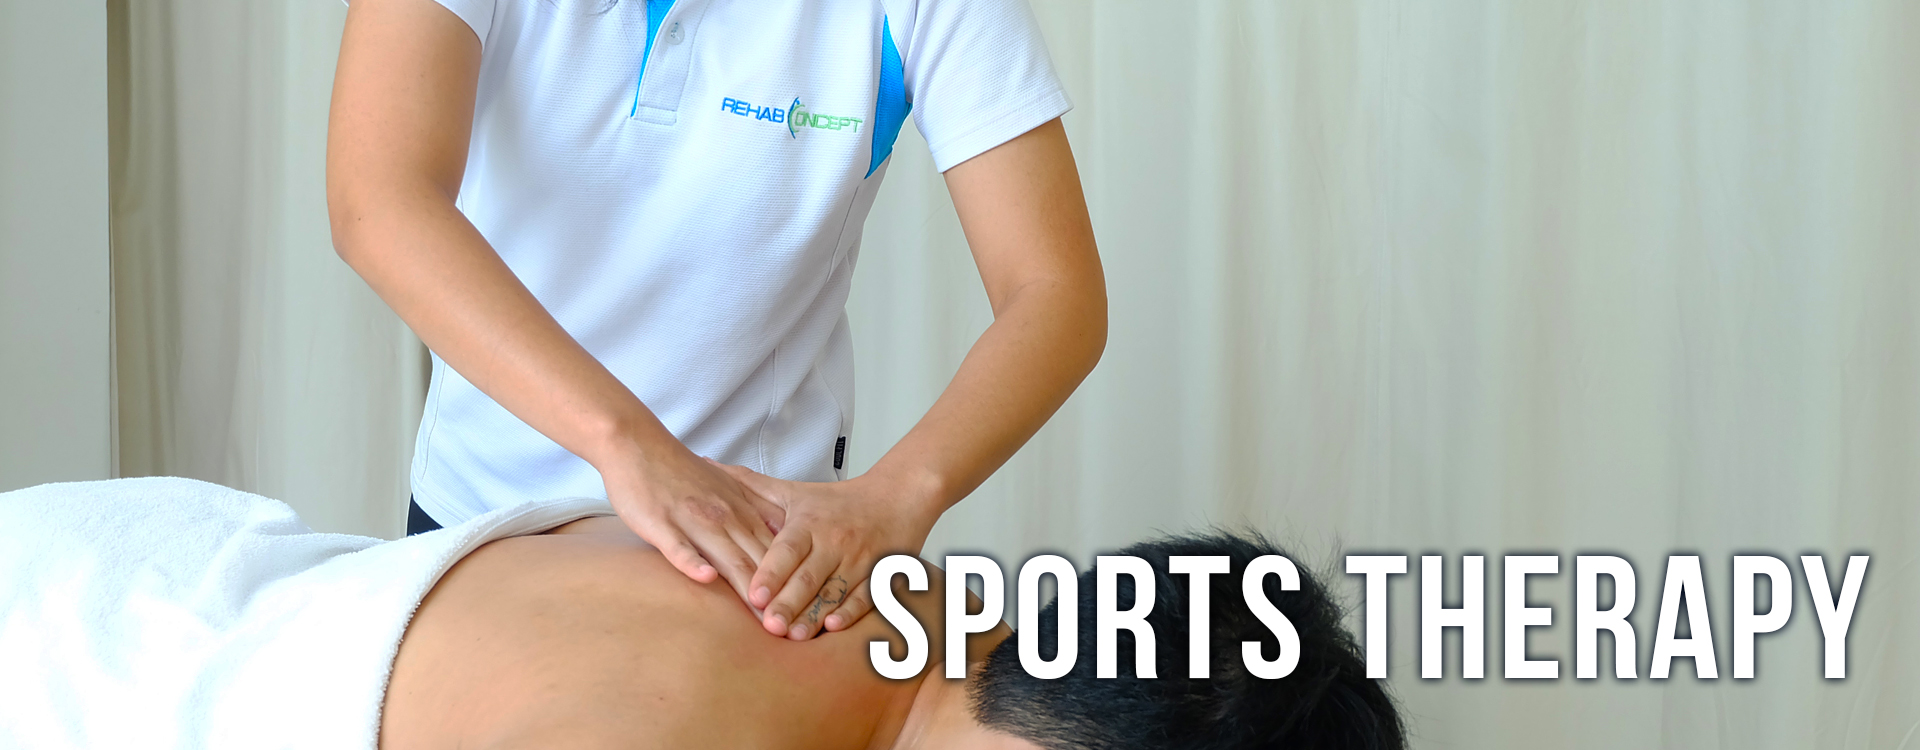 SERVICES-SPORTS-THERAPY